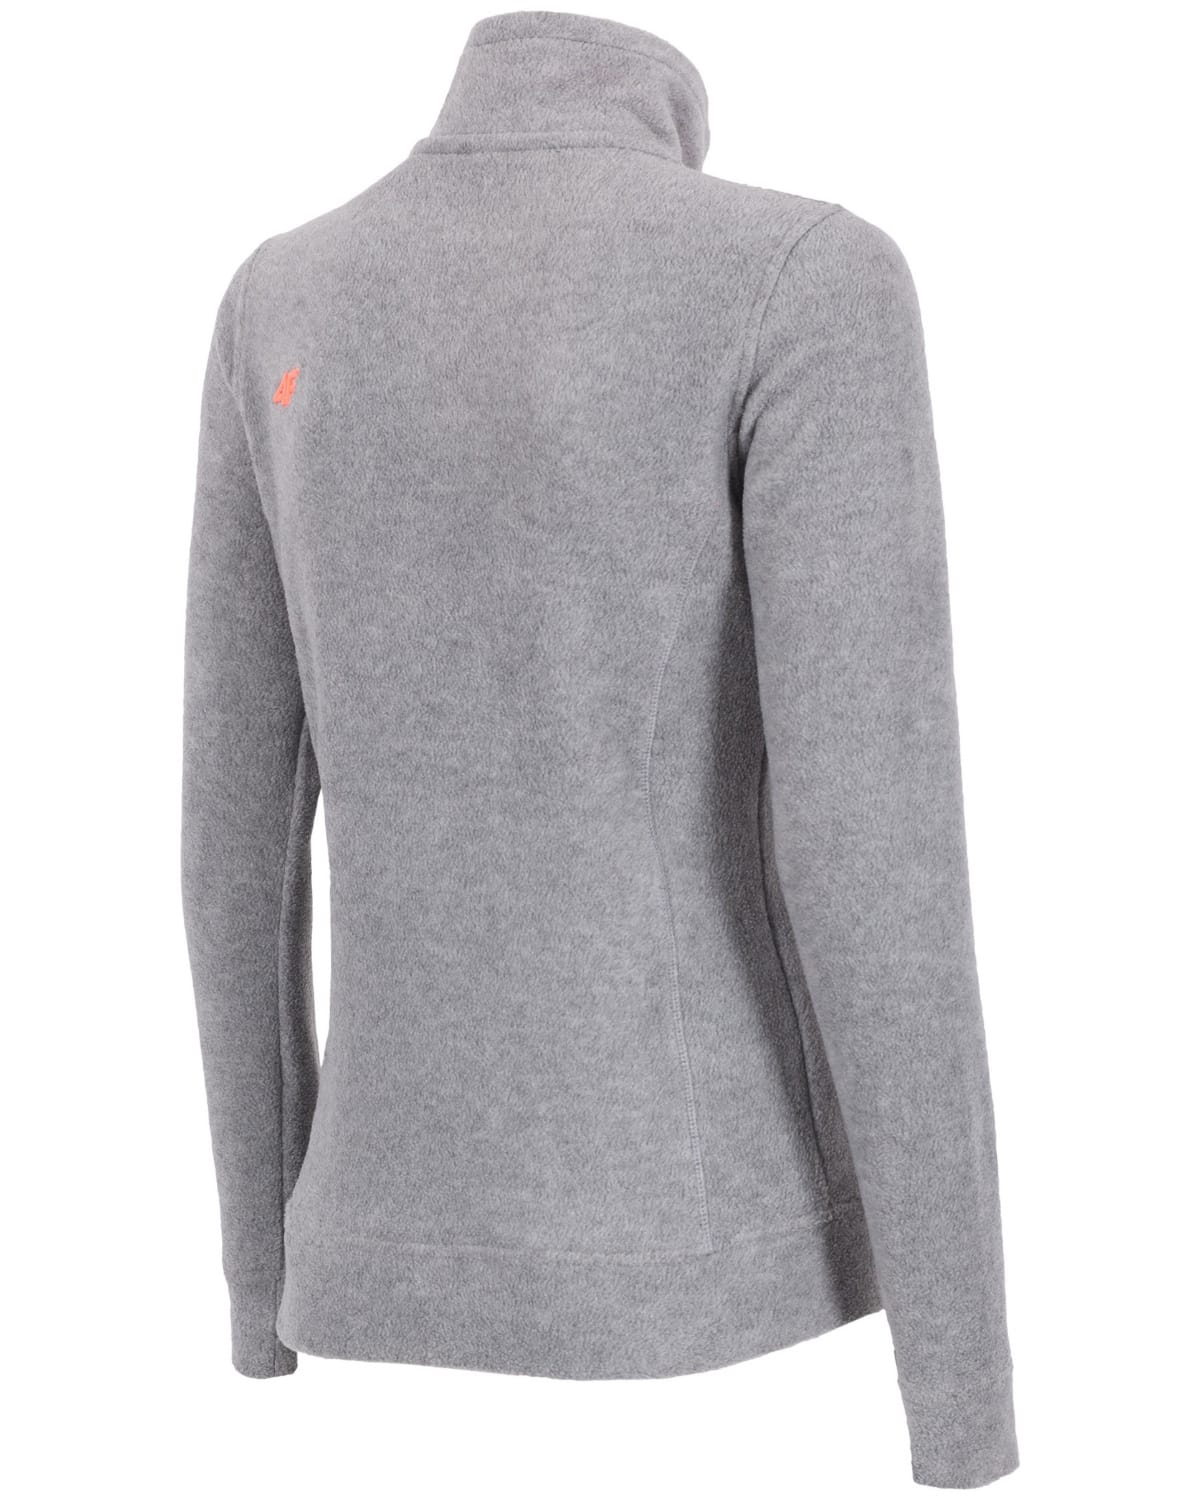 4F Fleece – Light Gray Melange